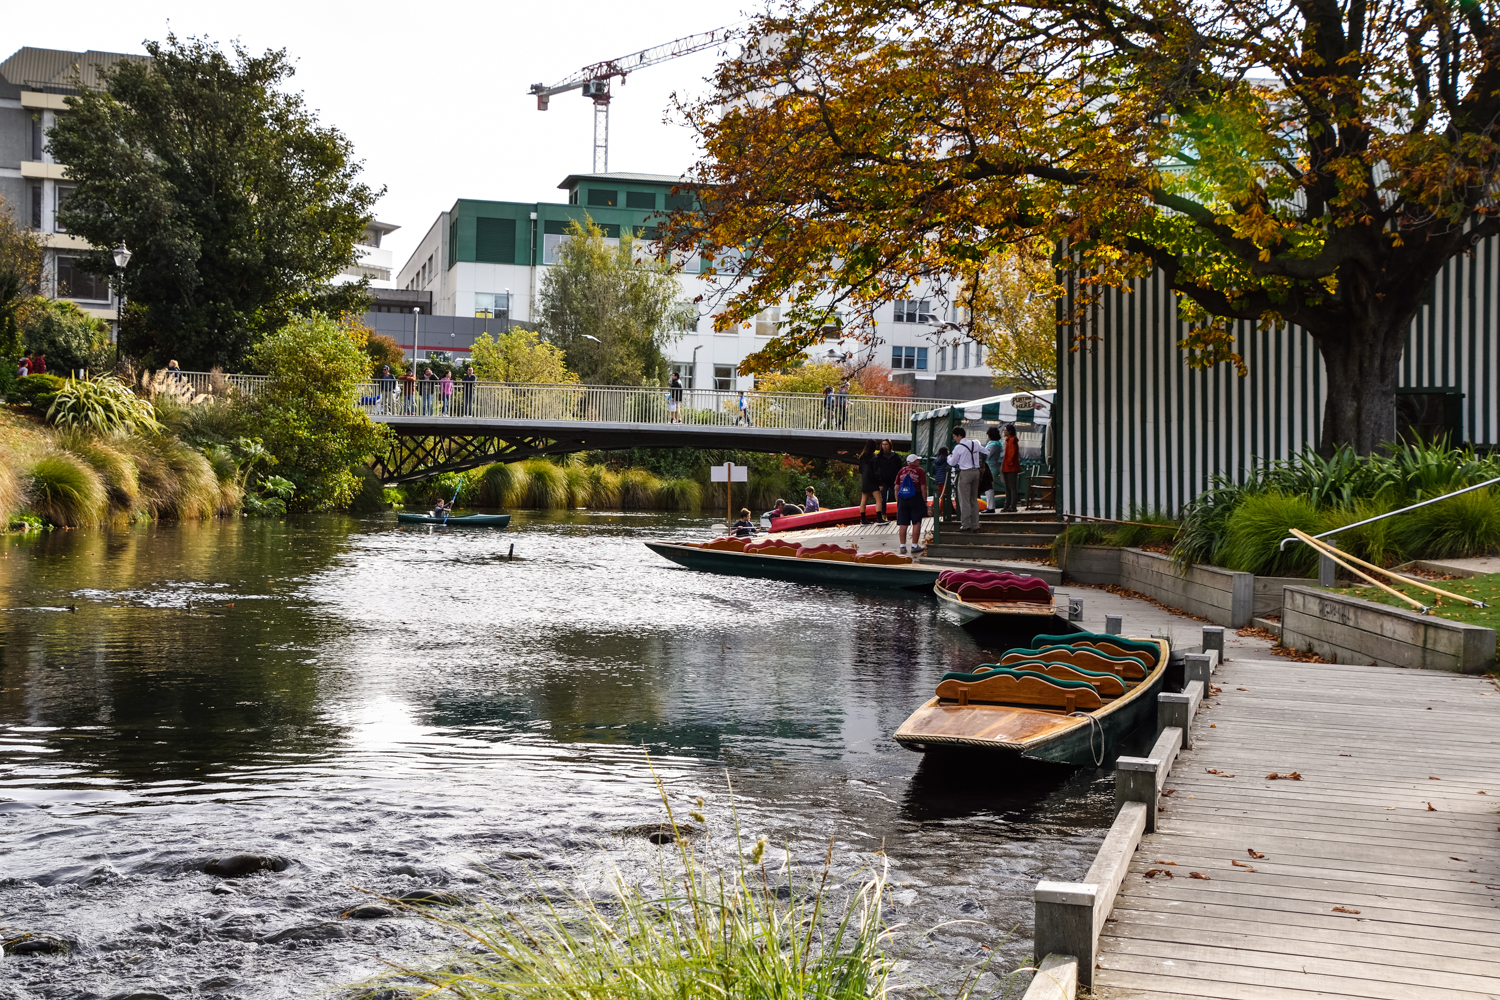 Punting on the Avon River, Christchurch, New Zealand. Photo: bebeball, Adobe Stock.